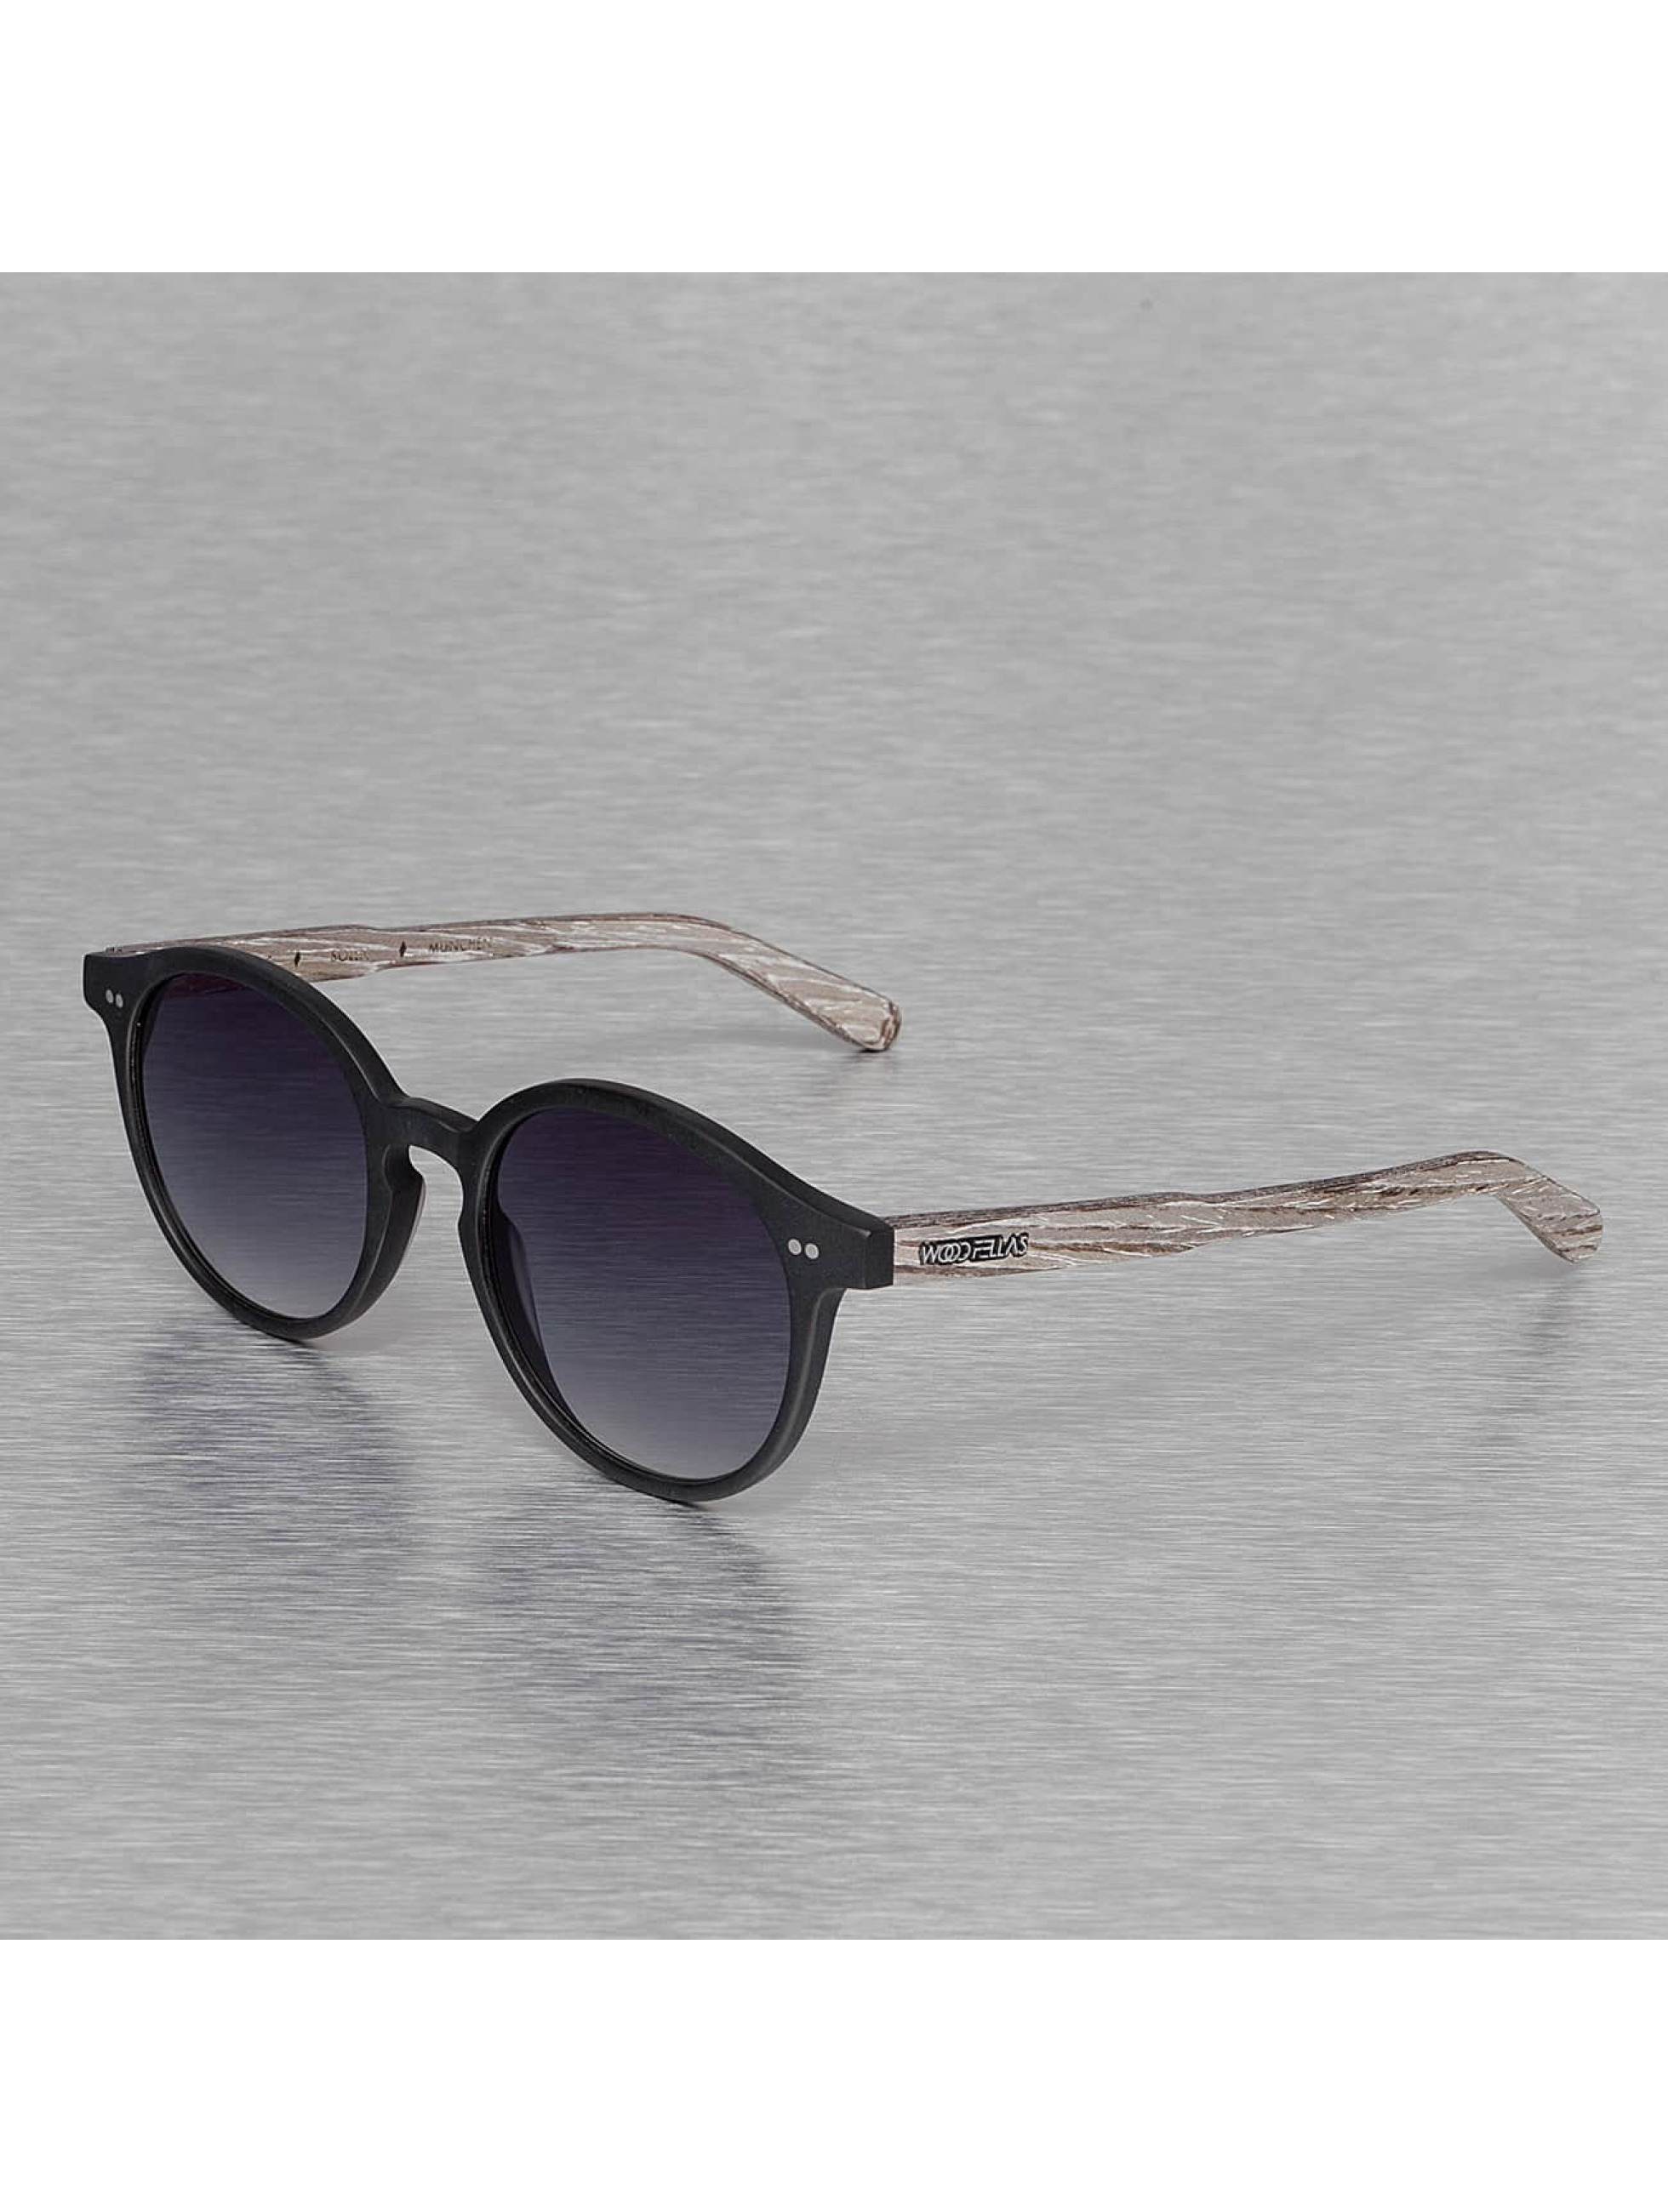 Wood Fellas Eyewear Очки Eyewear Solln Polarized Mirror черный